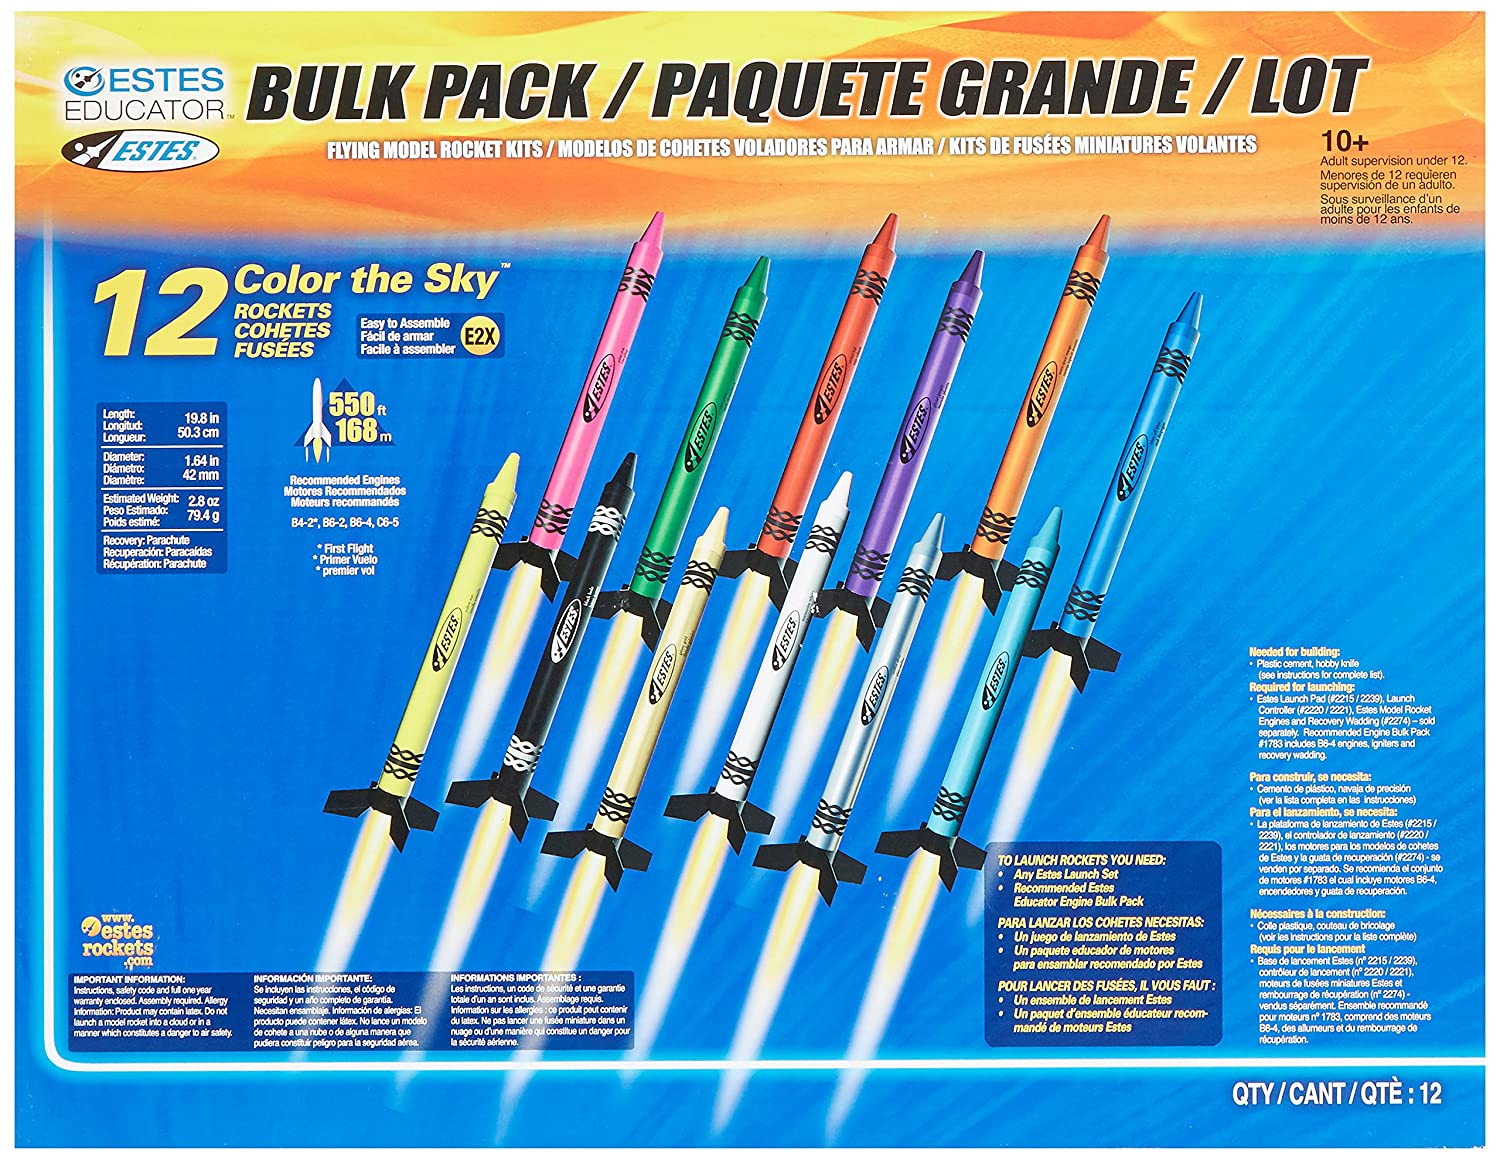 Bulk model rockets wholesale - Estes 1715 Color The Sky Bulk Pack Grade 3 To 12 Pack Of 12 Toy Remote Controlled Vehicles Amazon Com Industrial Scientific